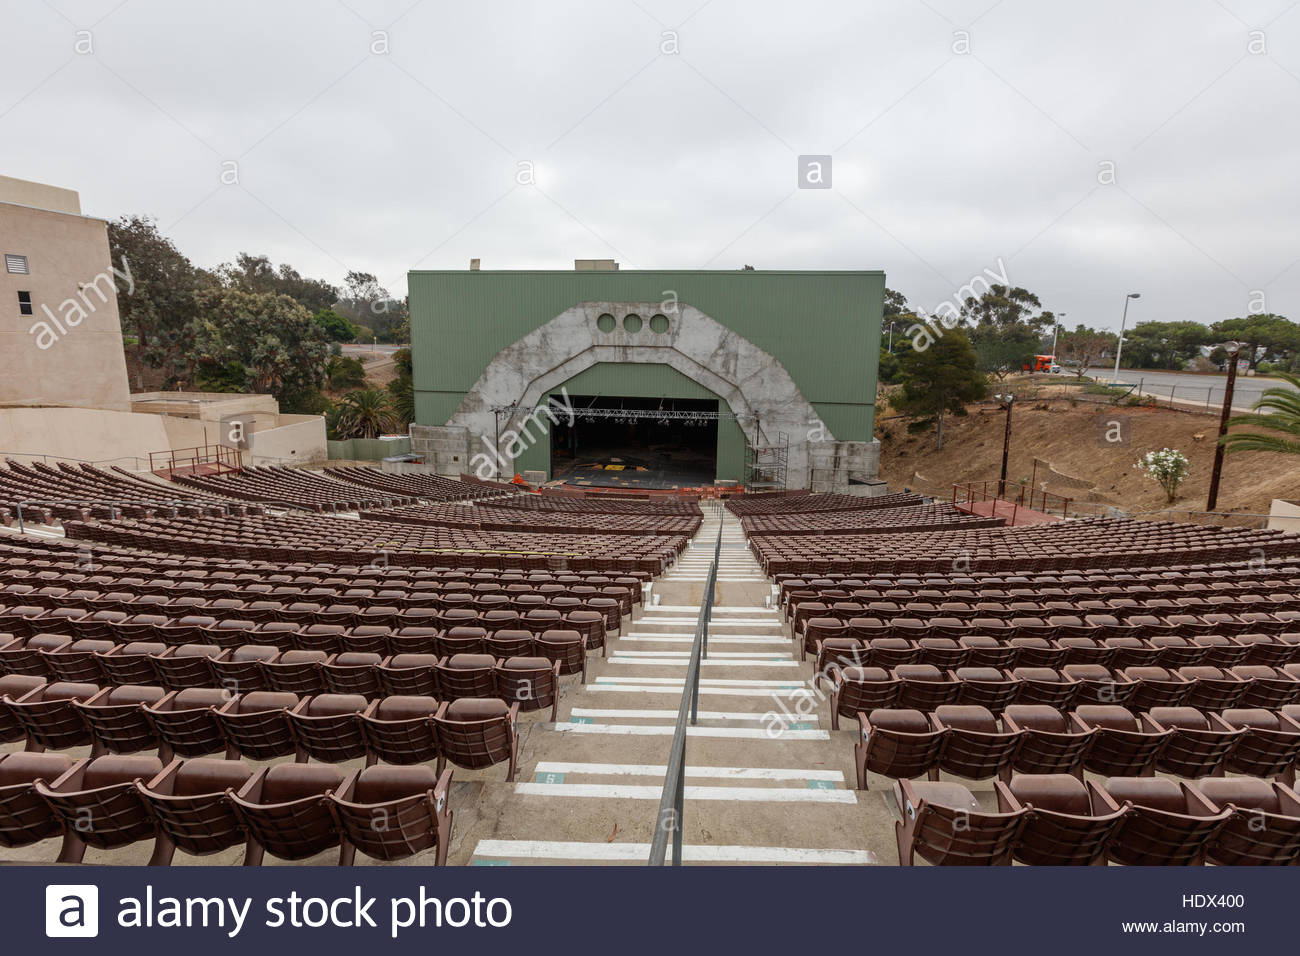 Torrey Pines State Beach and Reserve San Diego, the Starlight Bowl, San Diego, CA, USA Aug. 2016 Stock Photo ...